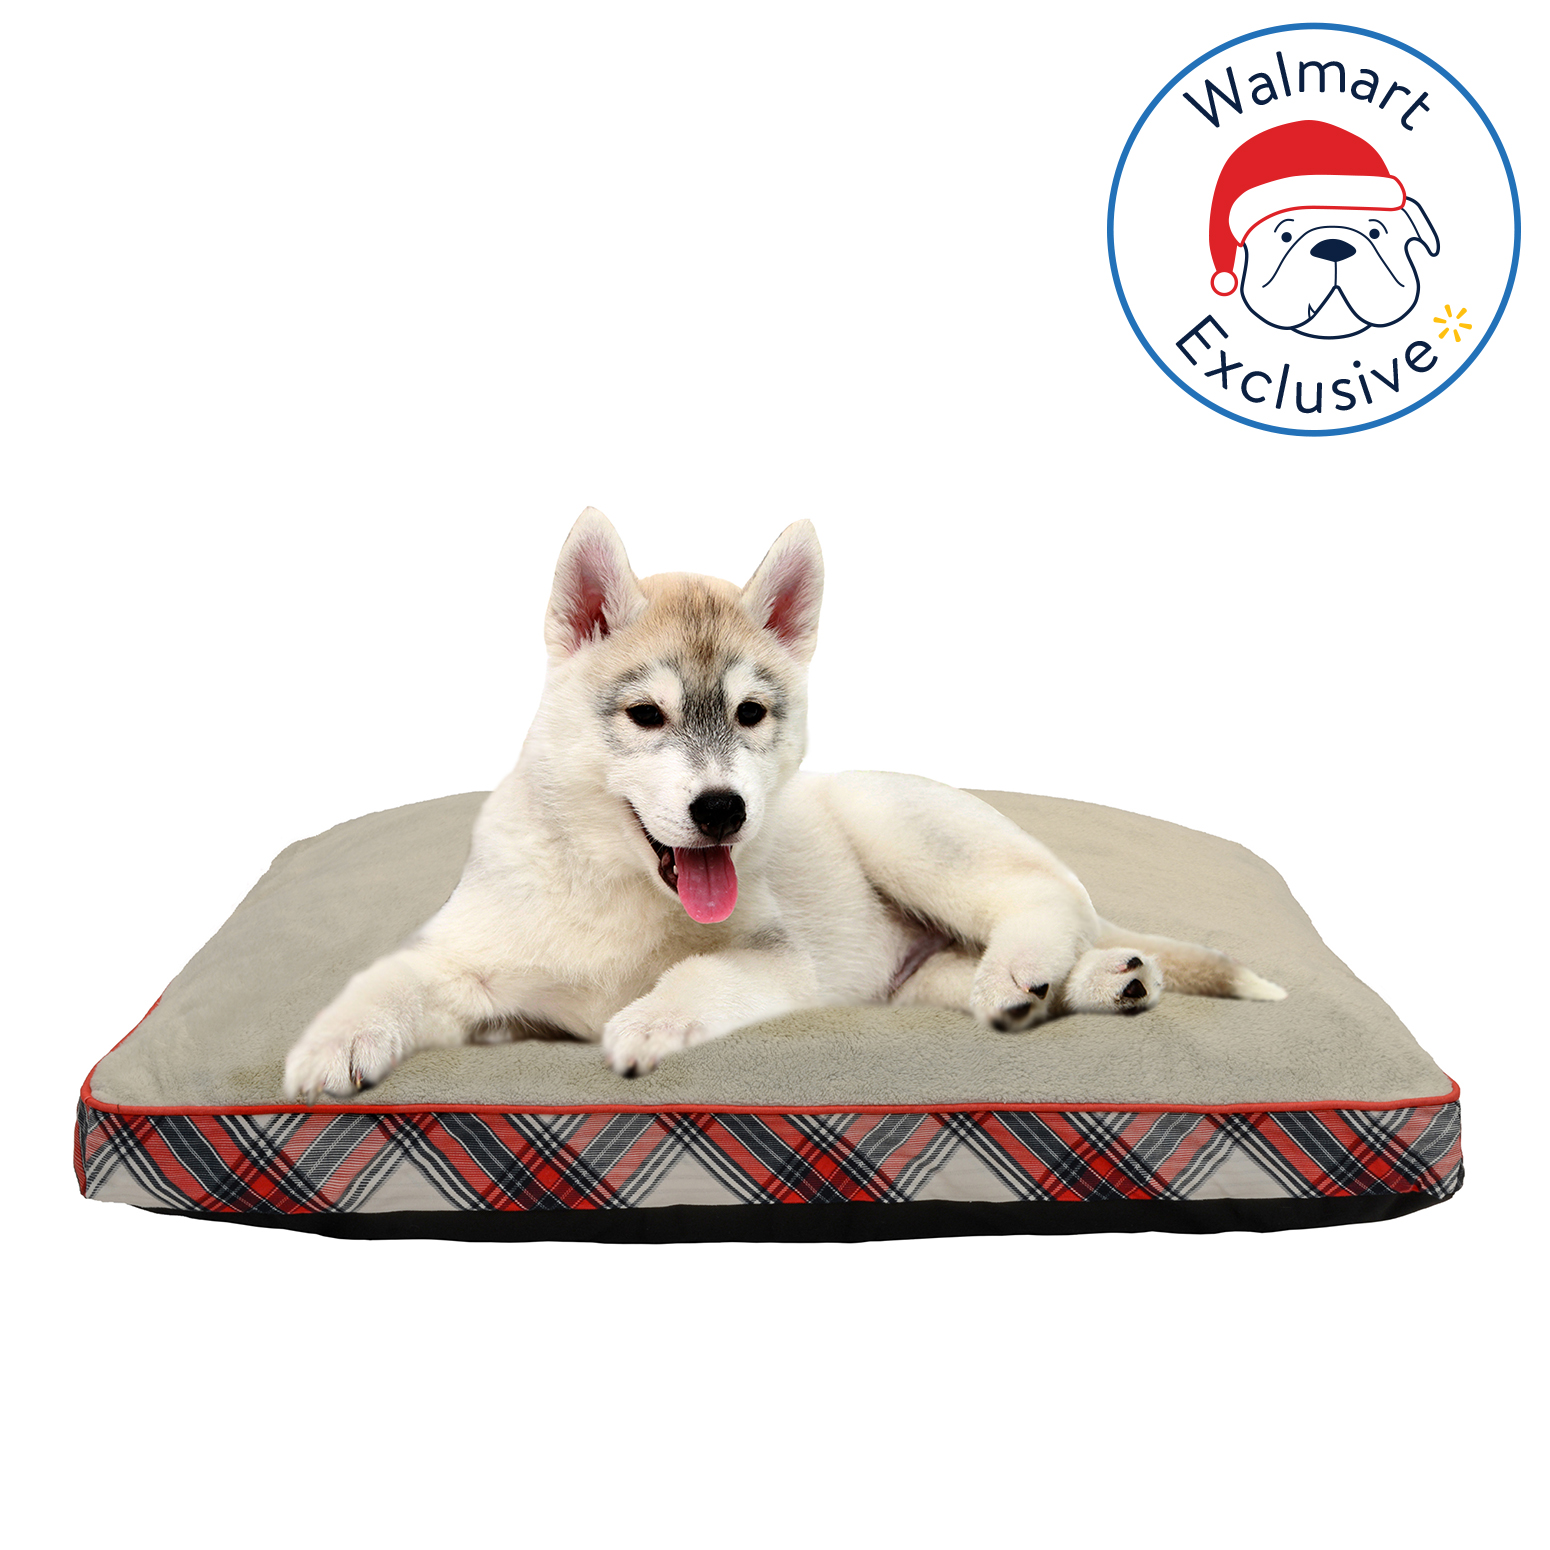 Time to snuggle with this pet bed